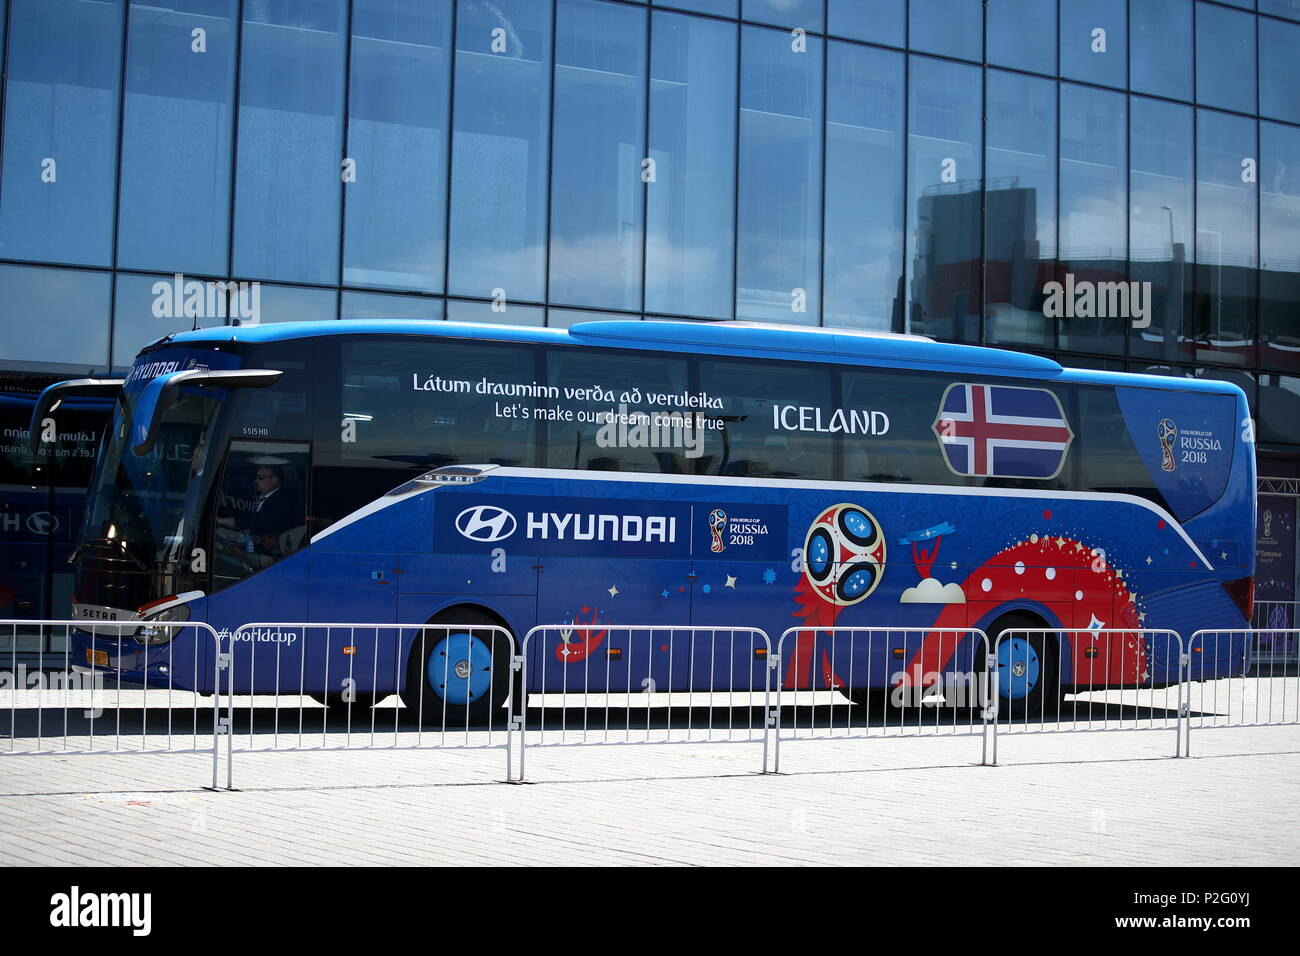 MOSCOW, RUSSIA - JUNE 15, 2018: A bus carrying members of the Icelandic men's national football team ahead of a training session ahead of the 2018 FIFA World Cup Group Stage match against Argentina, outside Spartak Stadium. Valery Sharifulin/TASS - Stock Image